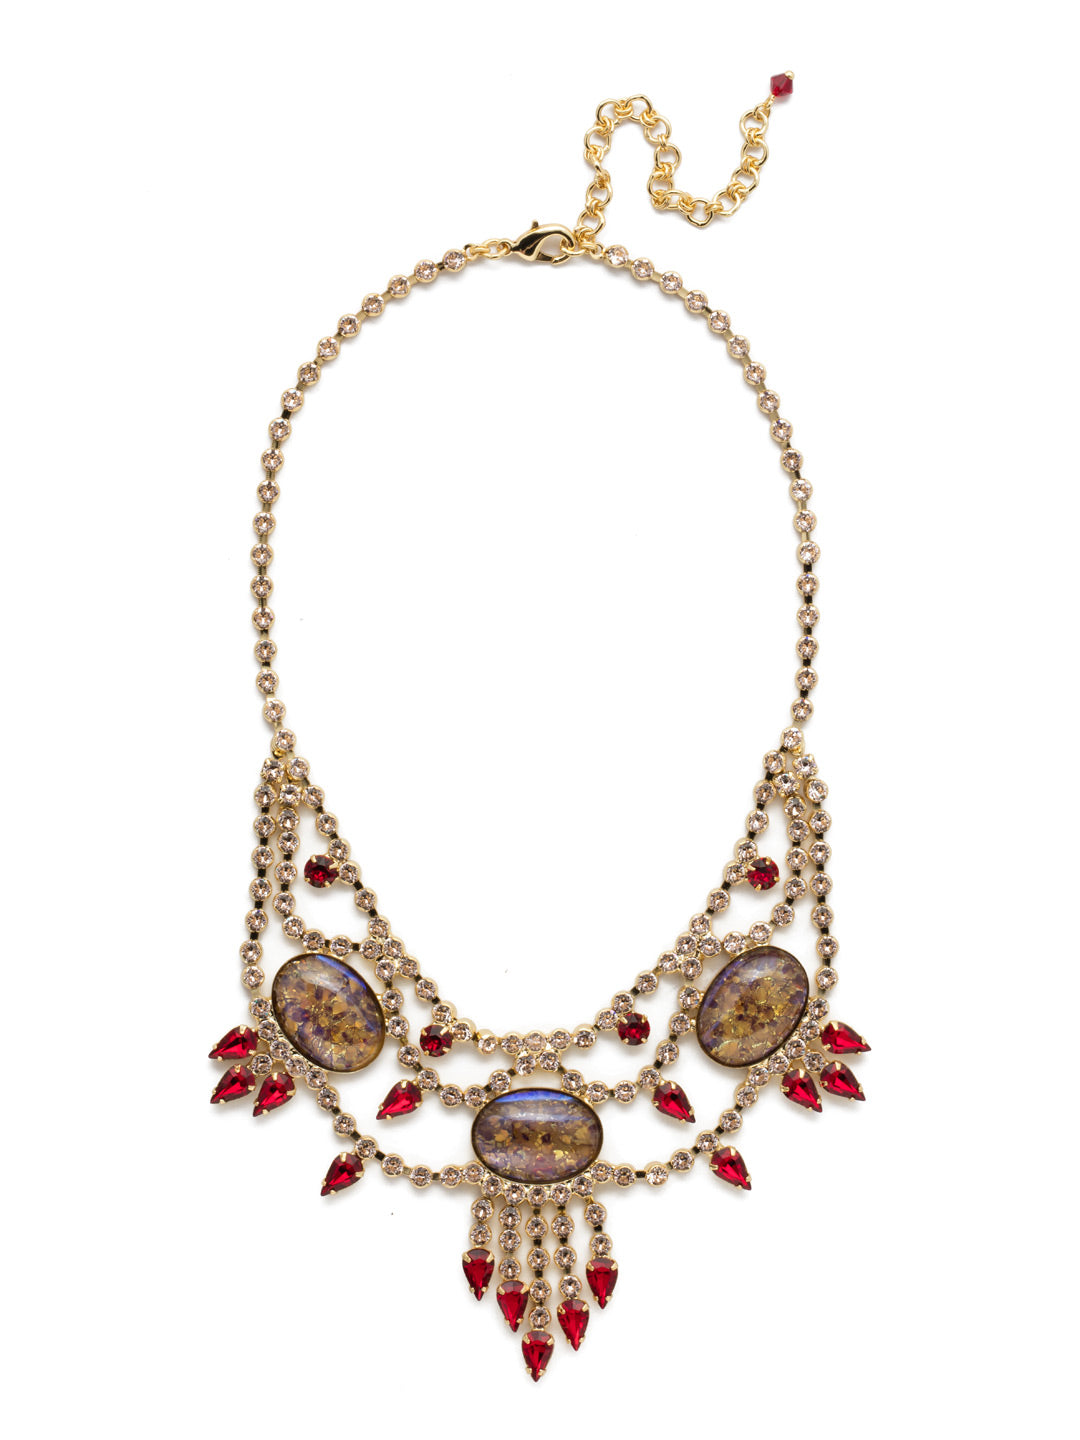 Living on the Fringe Statement Necklace - NCQ19BGSRC